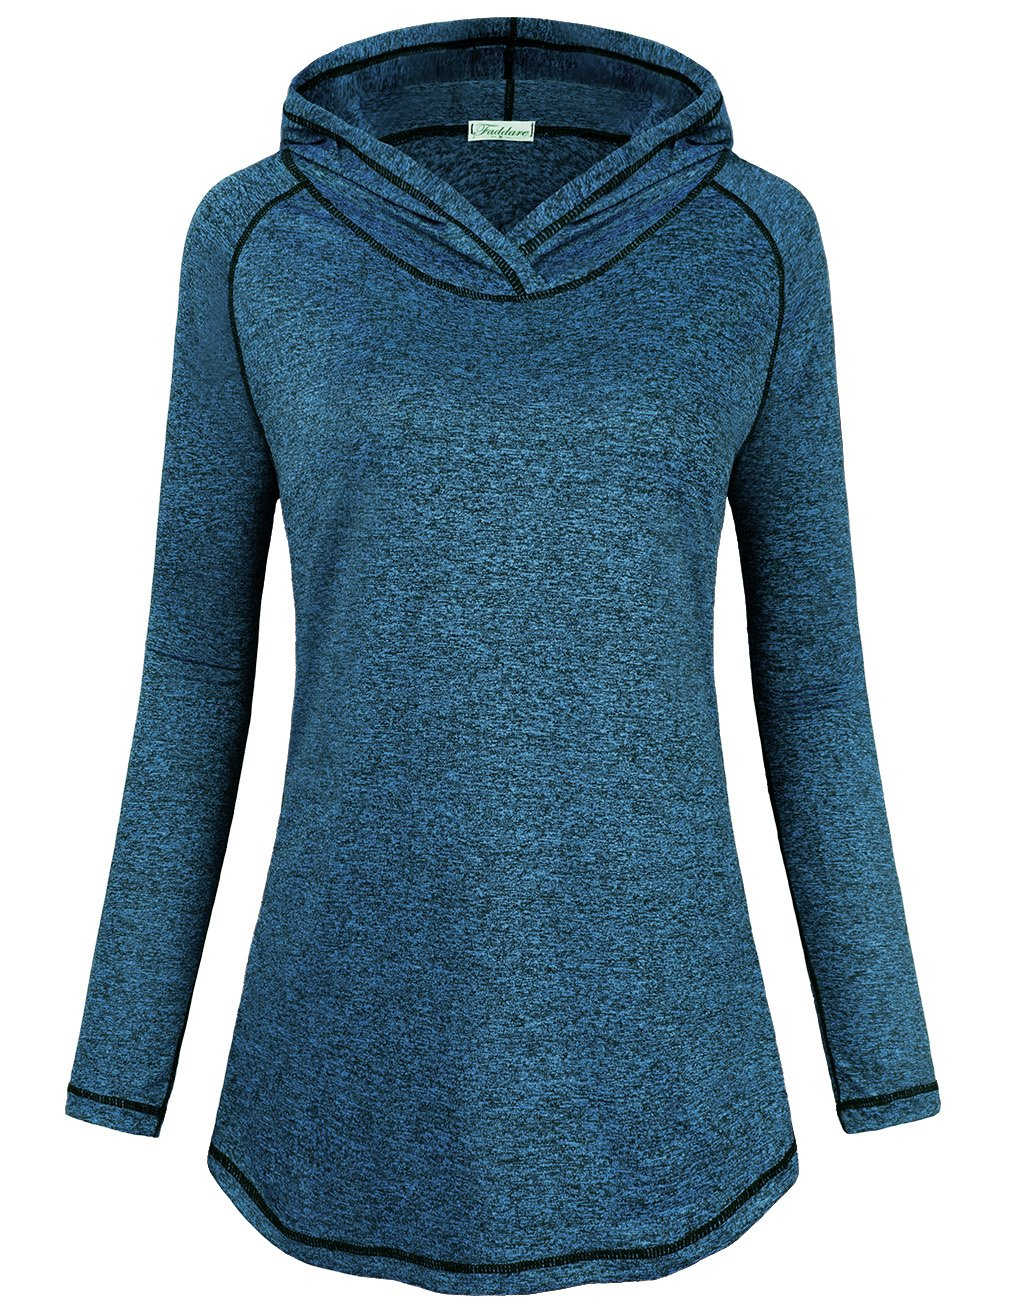 Faddare Activewear Tops for Women, Office Ladies Gifts Shirts Running Athleisure Hoodys T-Shirt Fashion 2017 Prime Clothes for Going Out Petite Blouses Knitted Wear,Blue L